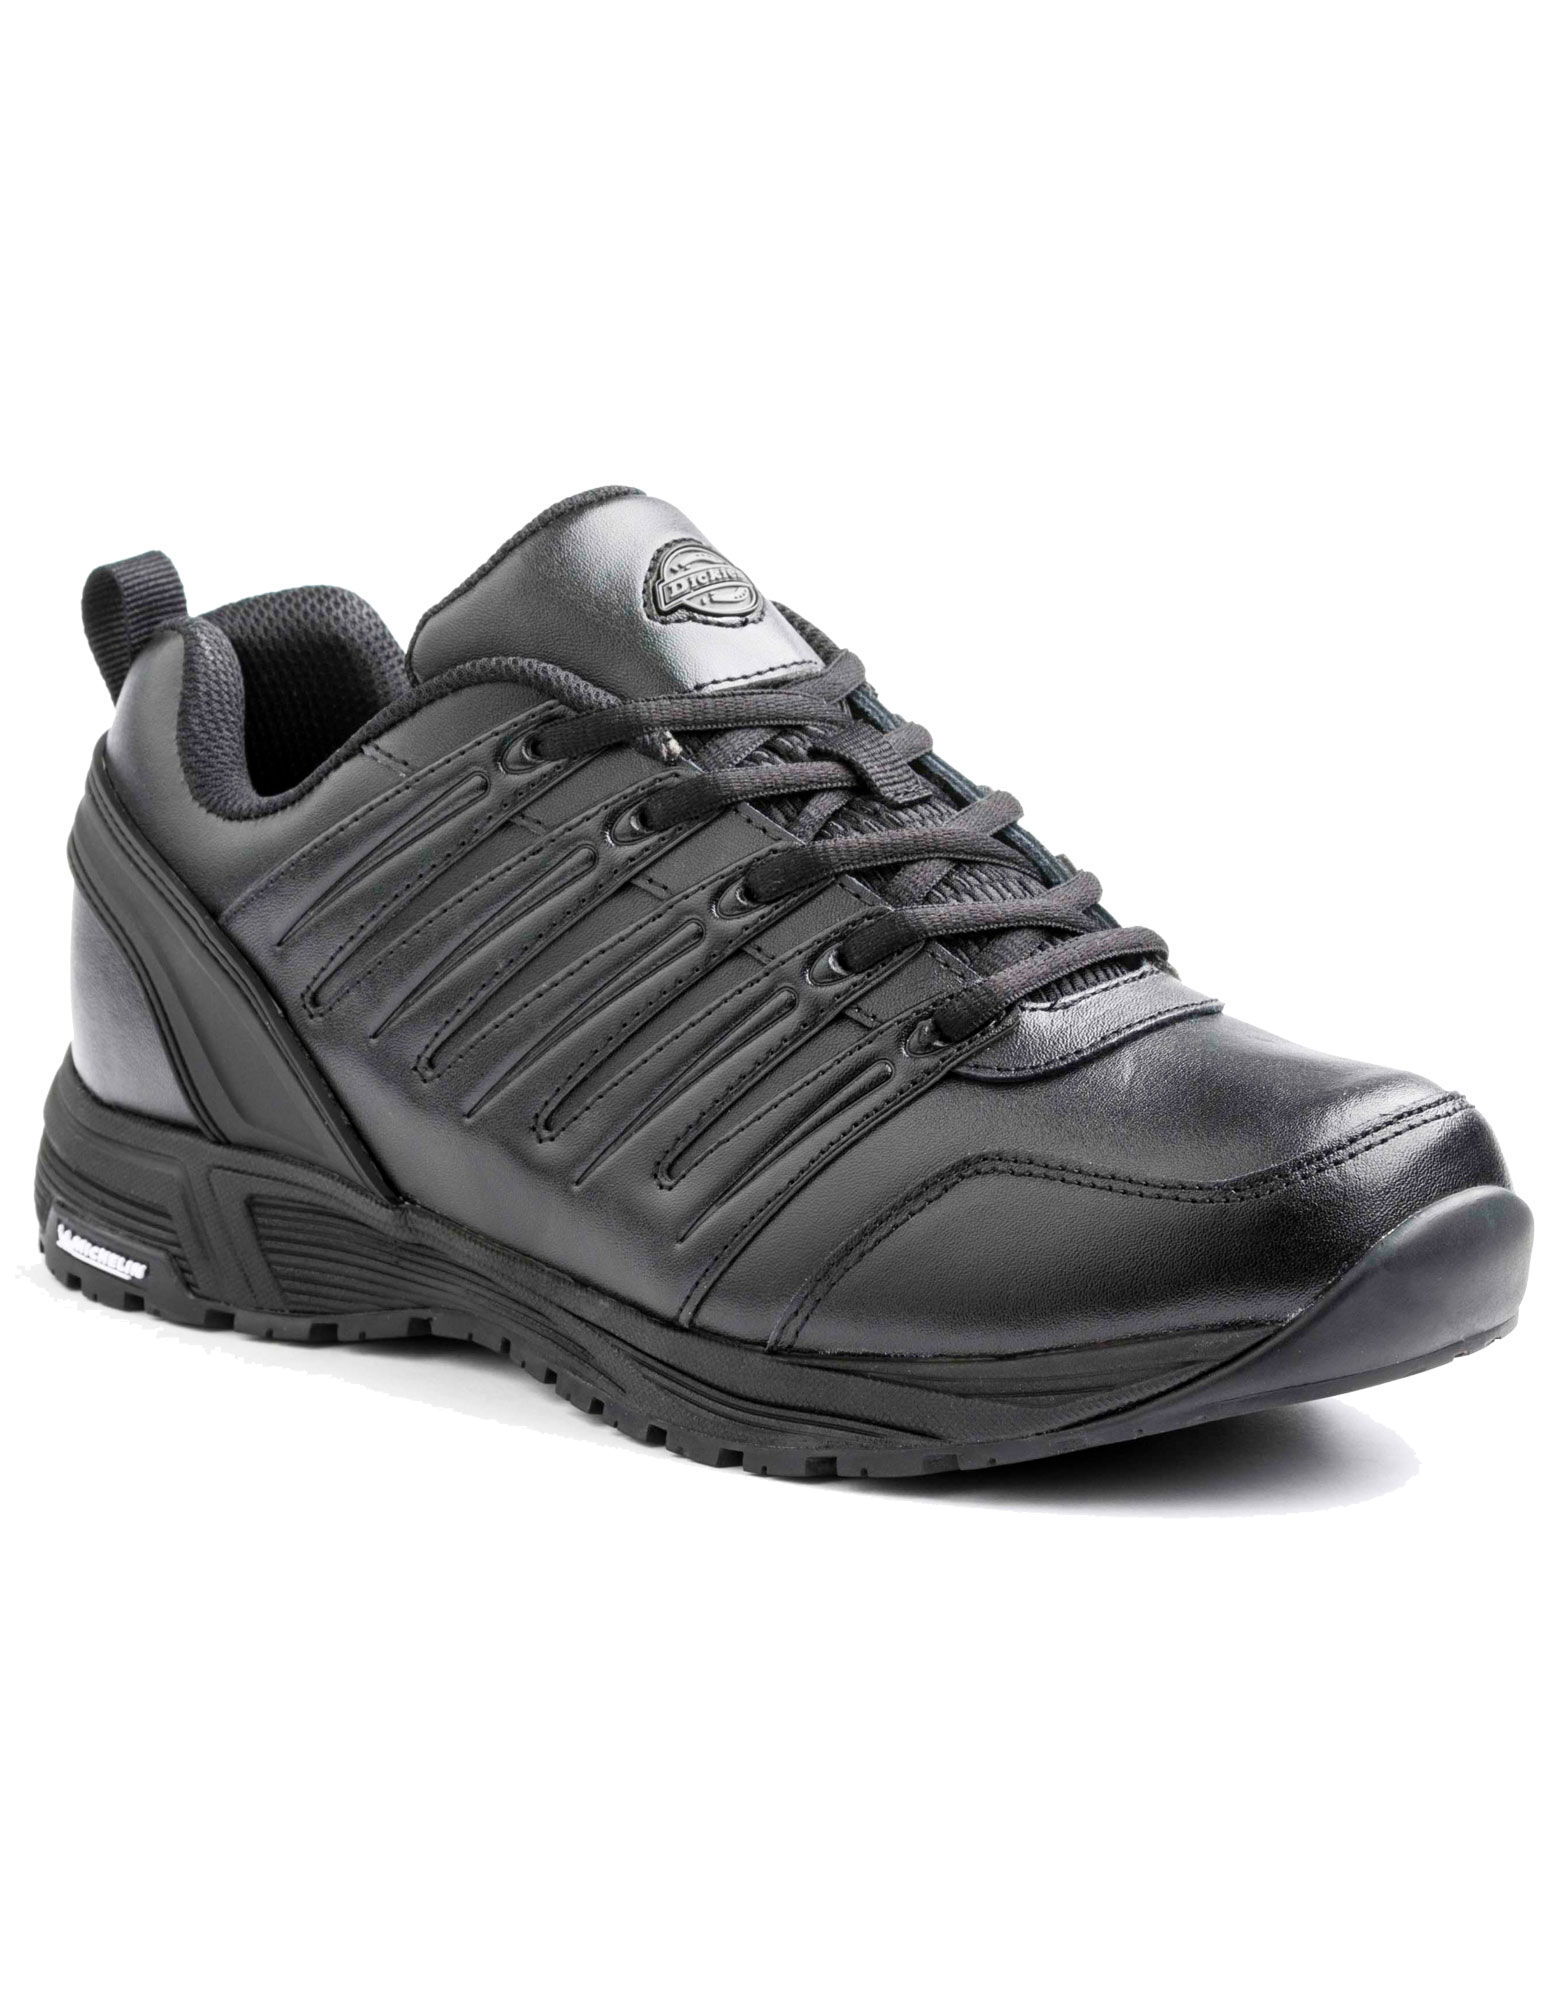 Where To Find Slip Resistant Shoes